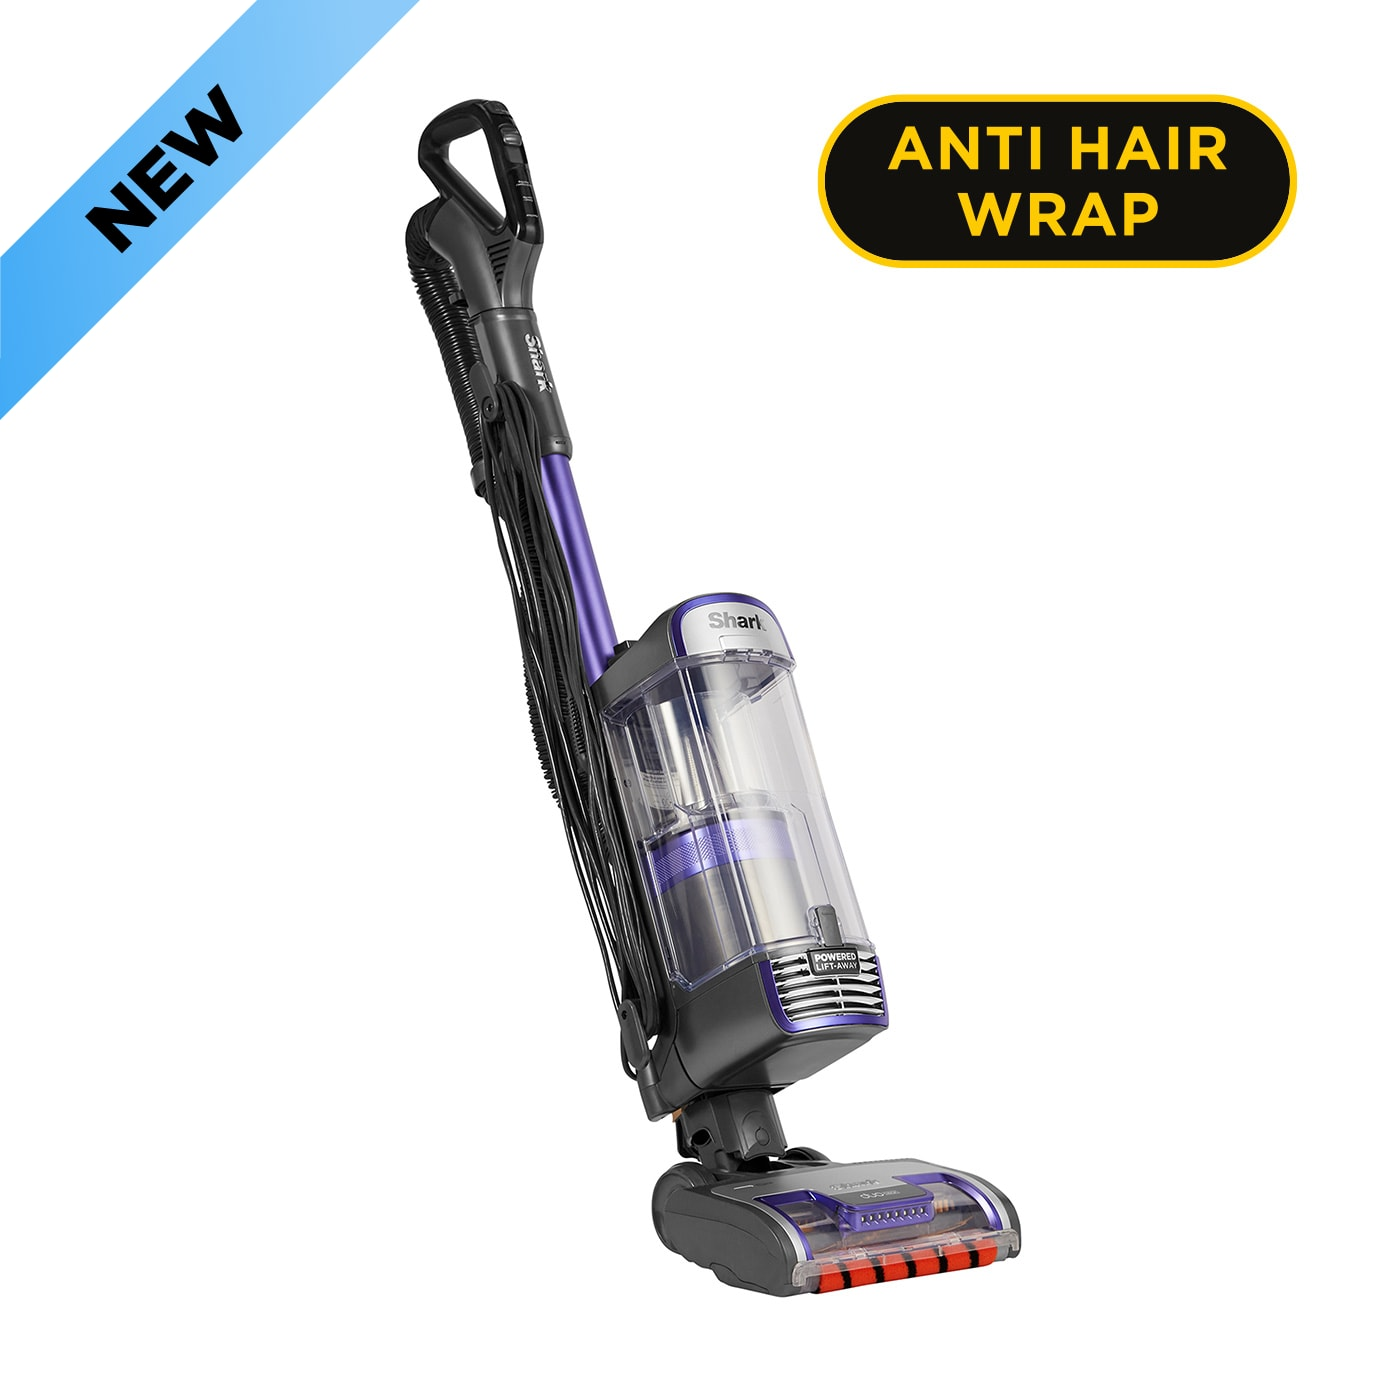 Shark Anti Hair Wrap Upright Vacuum Cleaner with Powered Lift-Away NZ850UK product photo